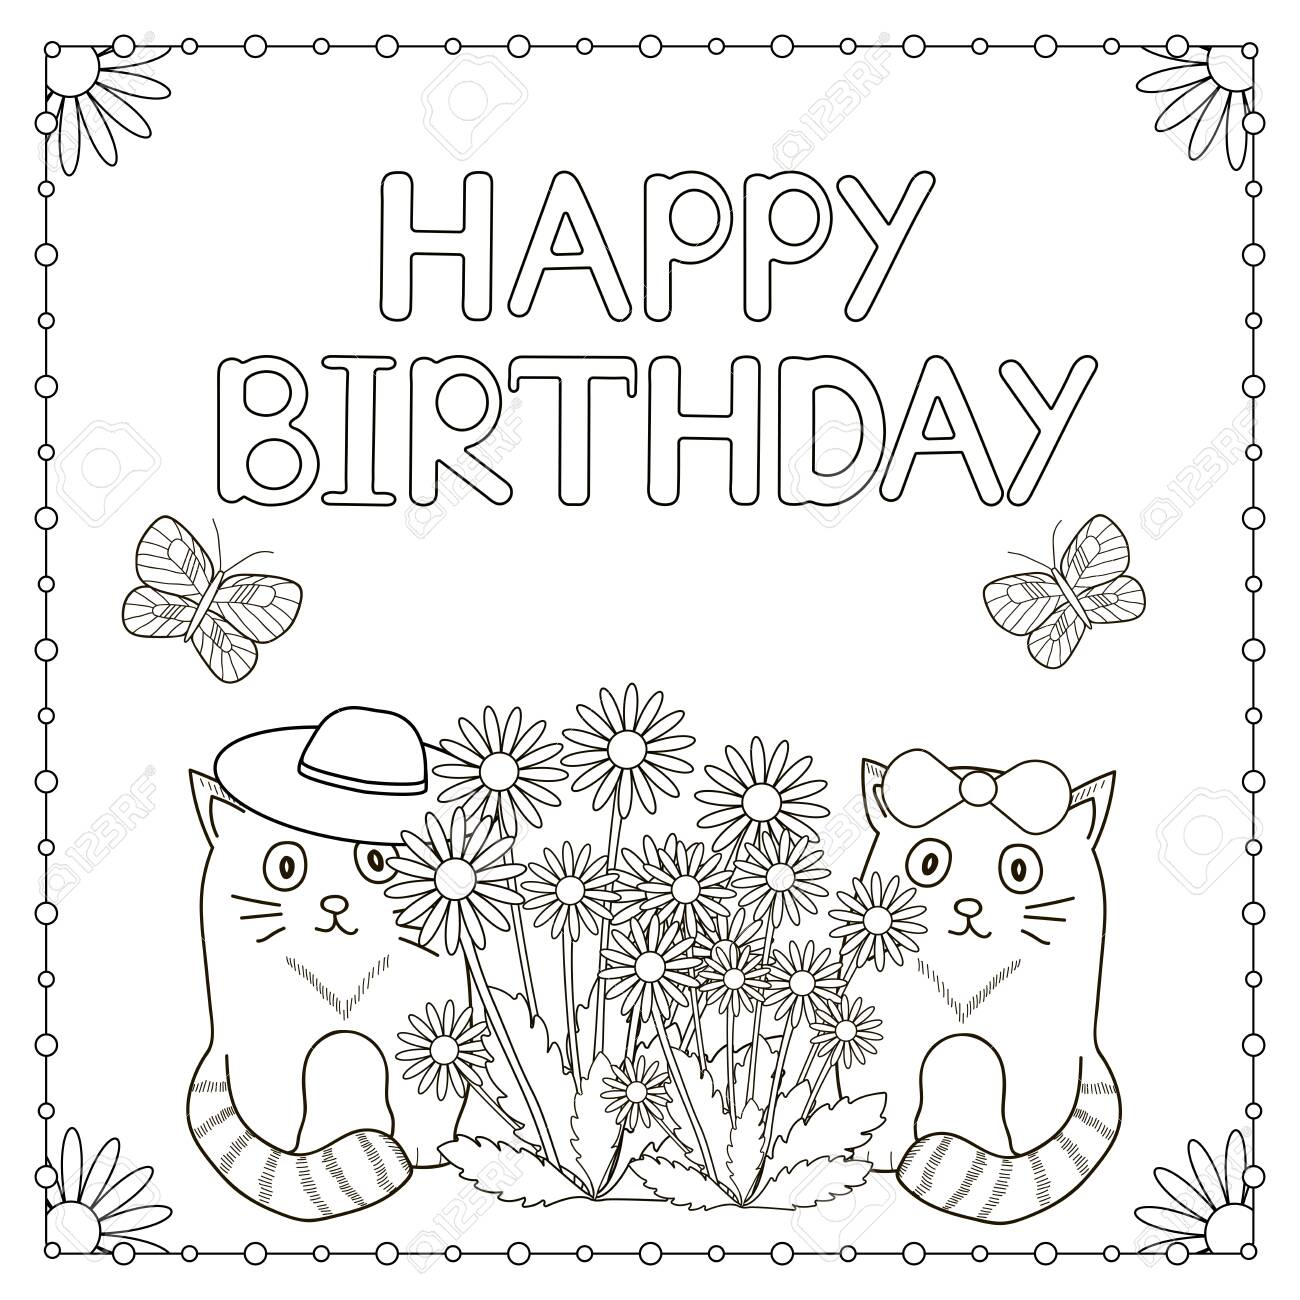 Coloring Books For Kids To Print Free Happy Birthday Sheets Printable Pages  Adults On Amazon – Approachingtheelephant